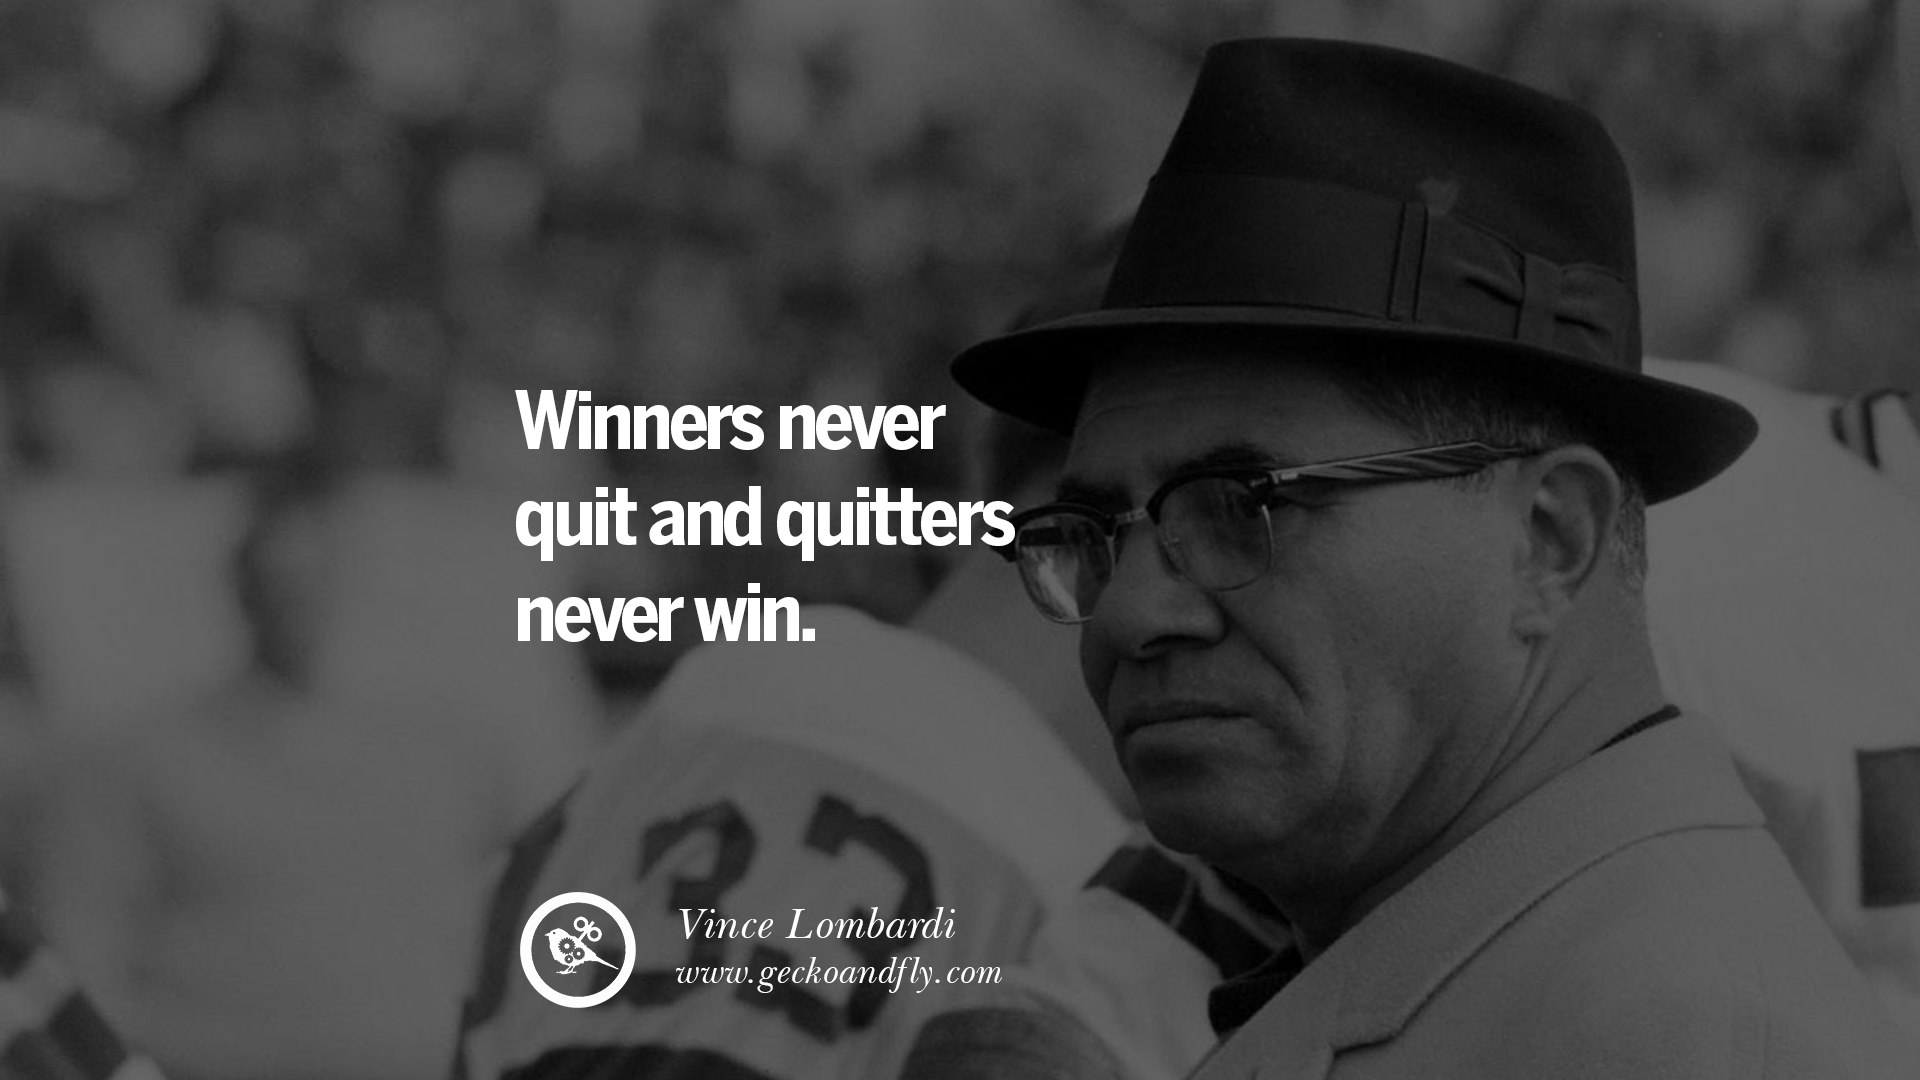 vince lombardi leadership quotes quotesgram